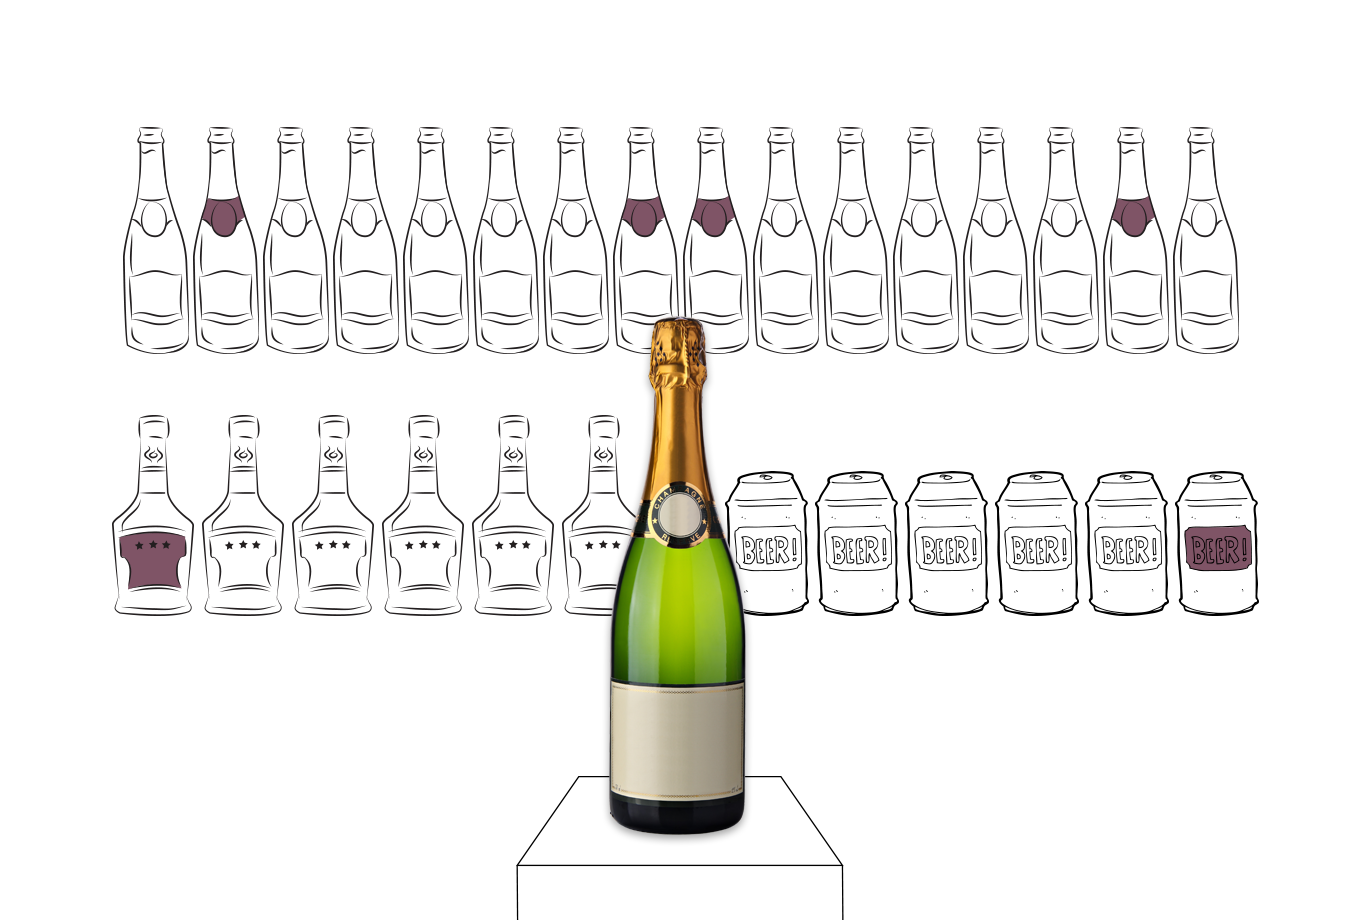 off licence insurance illustration of champagne bottle in front of assorted alcohol